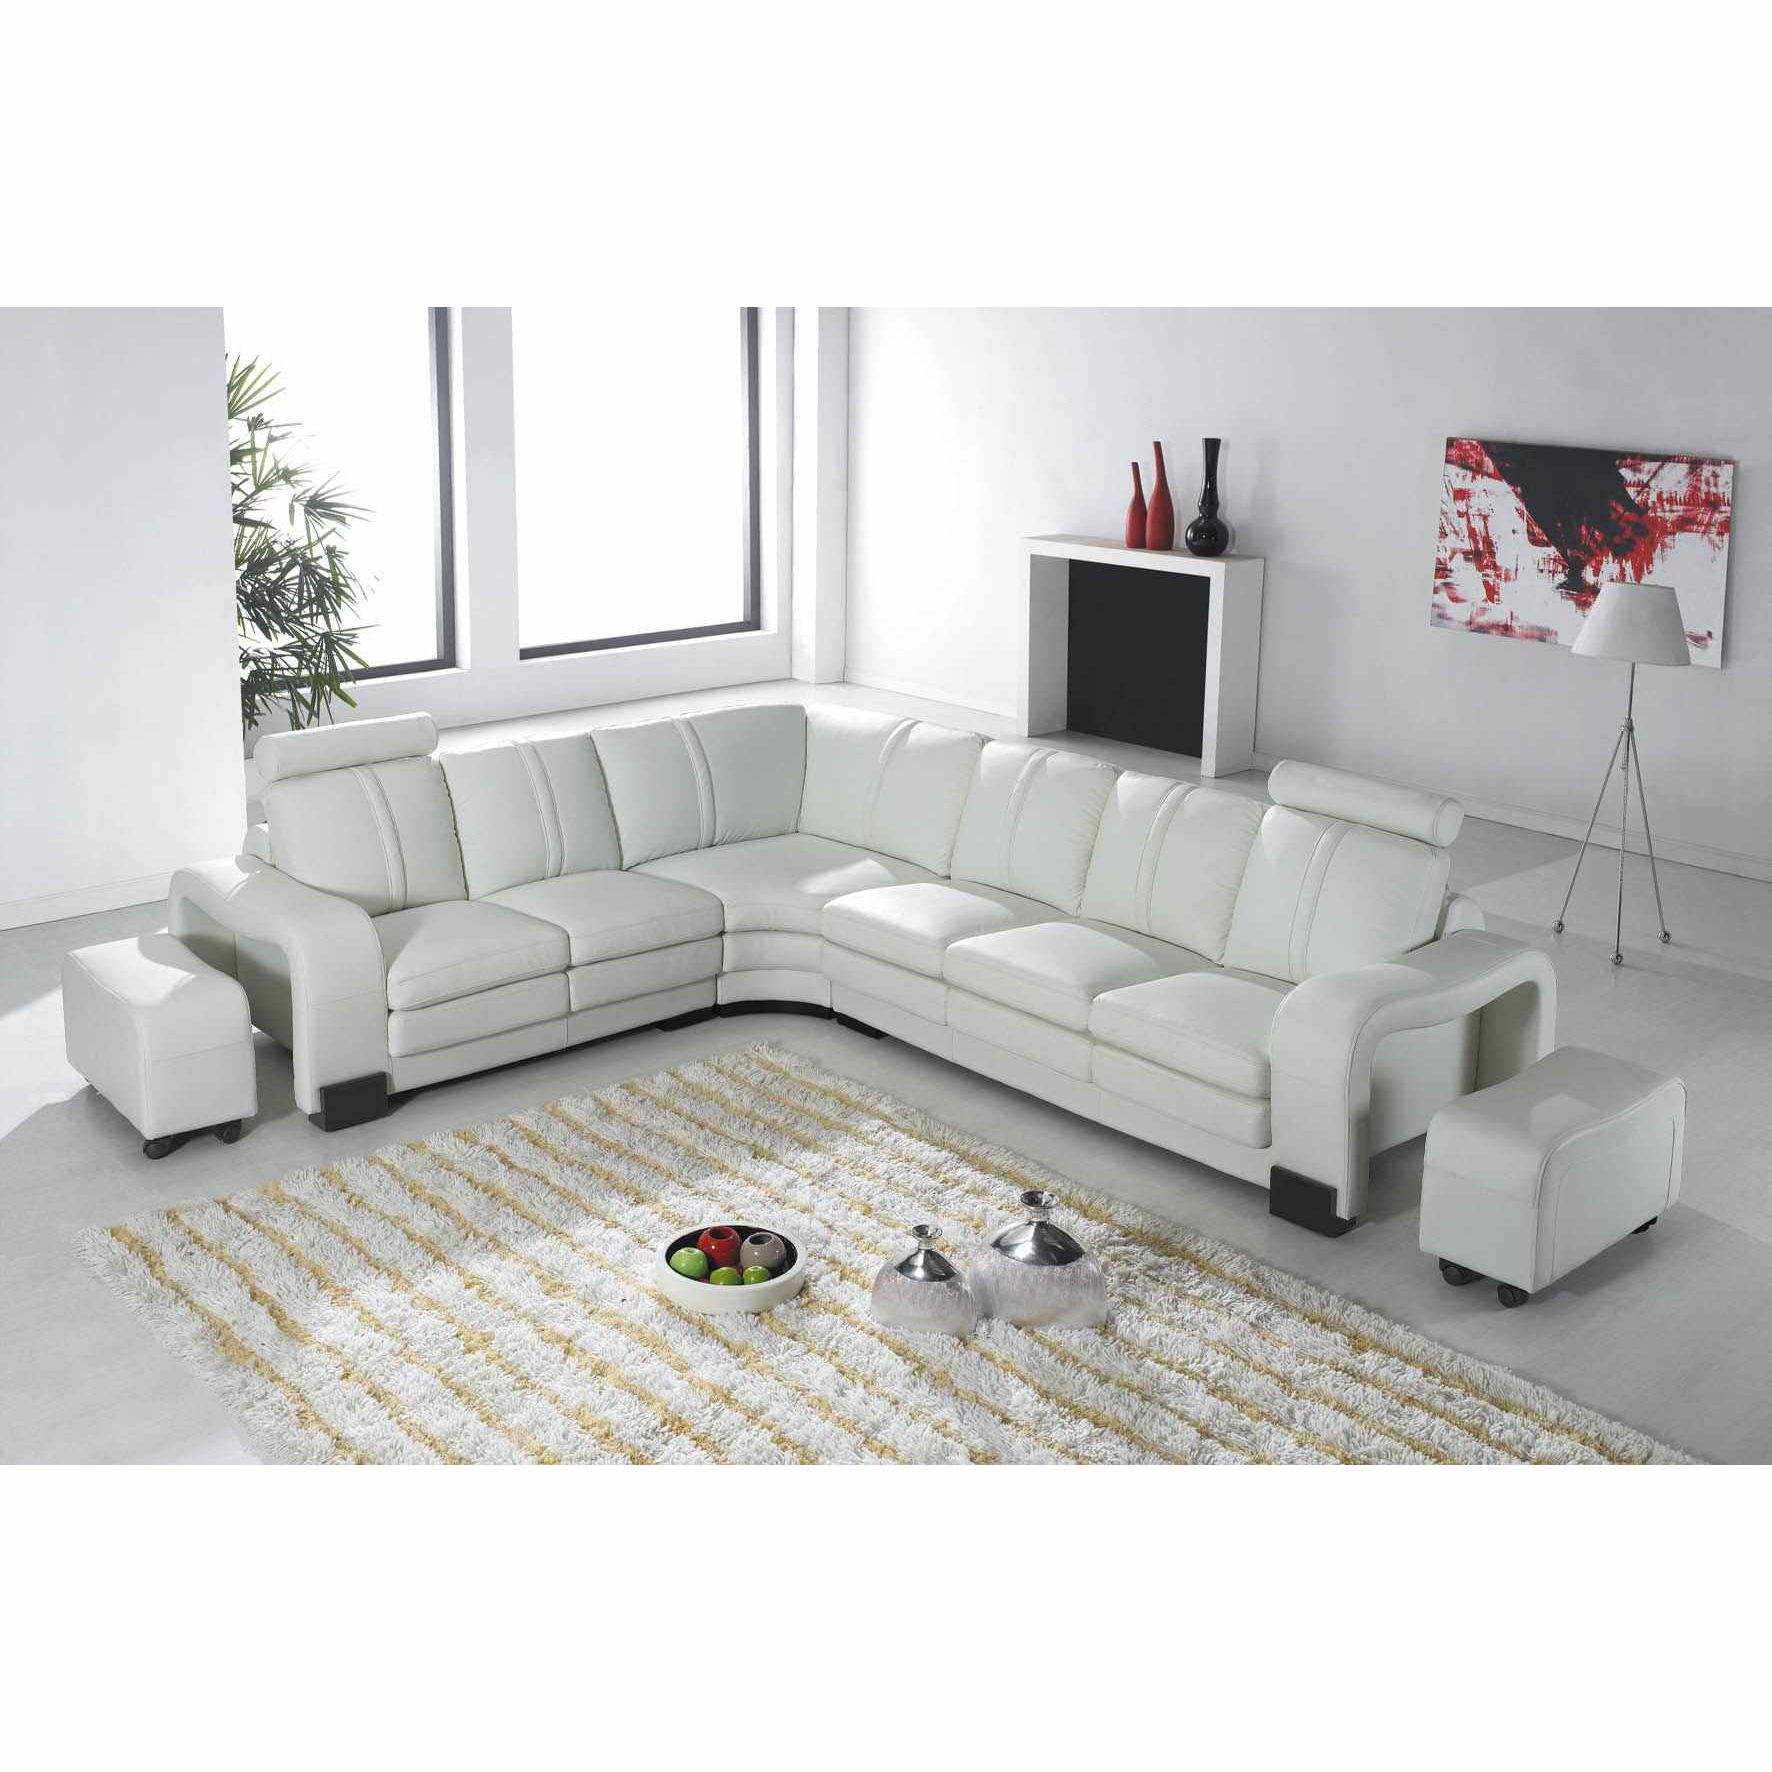 Canap d angle convertible cuir blanc canap sofa divan for Canape dangle cuir